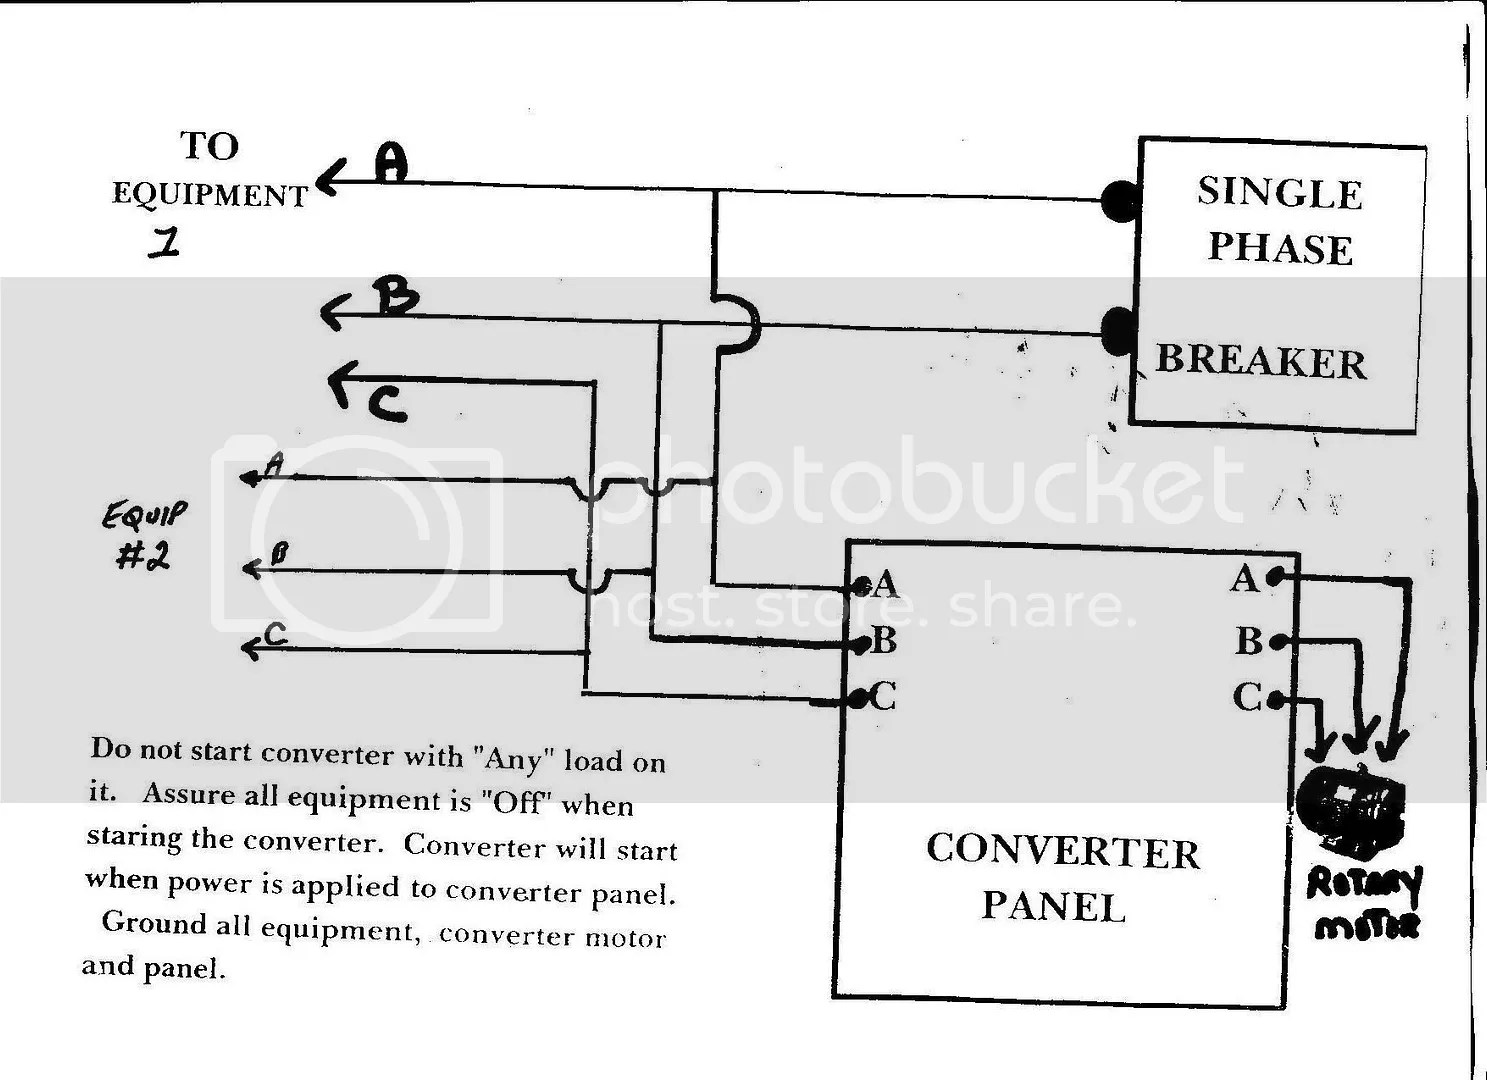 hight resolution of arco 60122 wiring diagram wiring diagrams structure arco 60122 wiring diagram